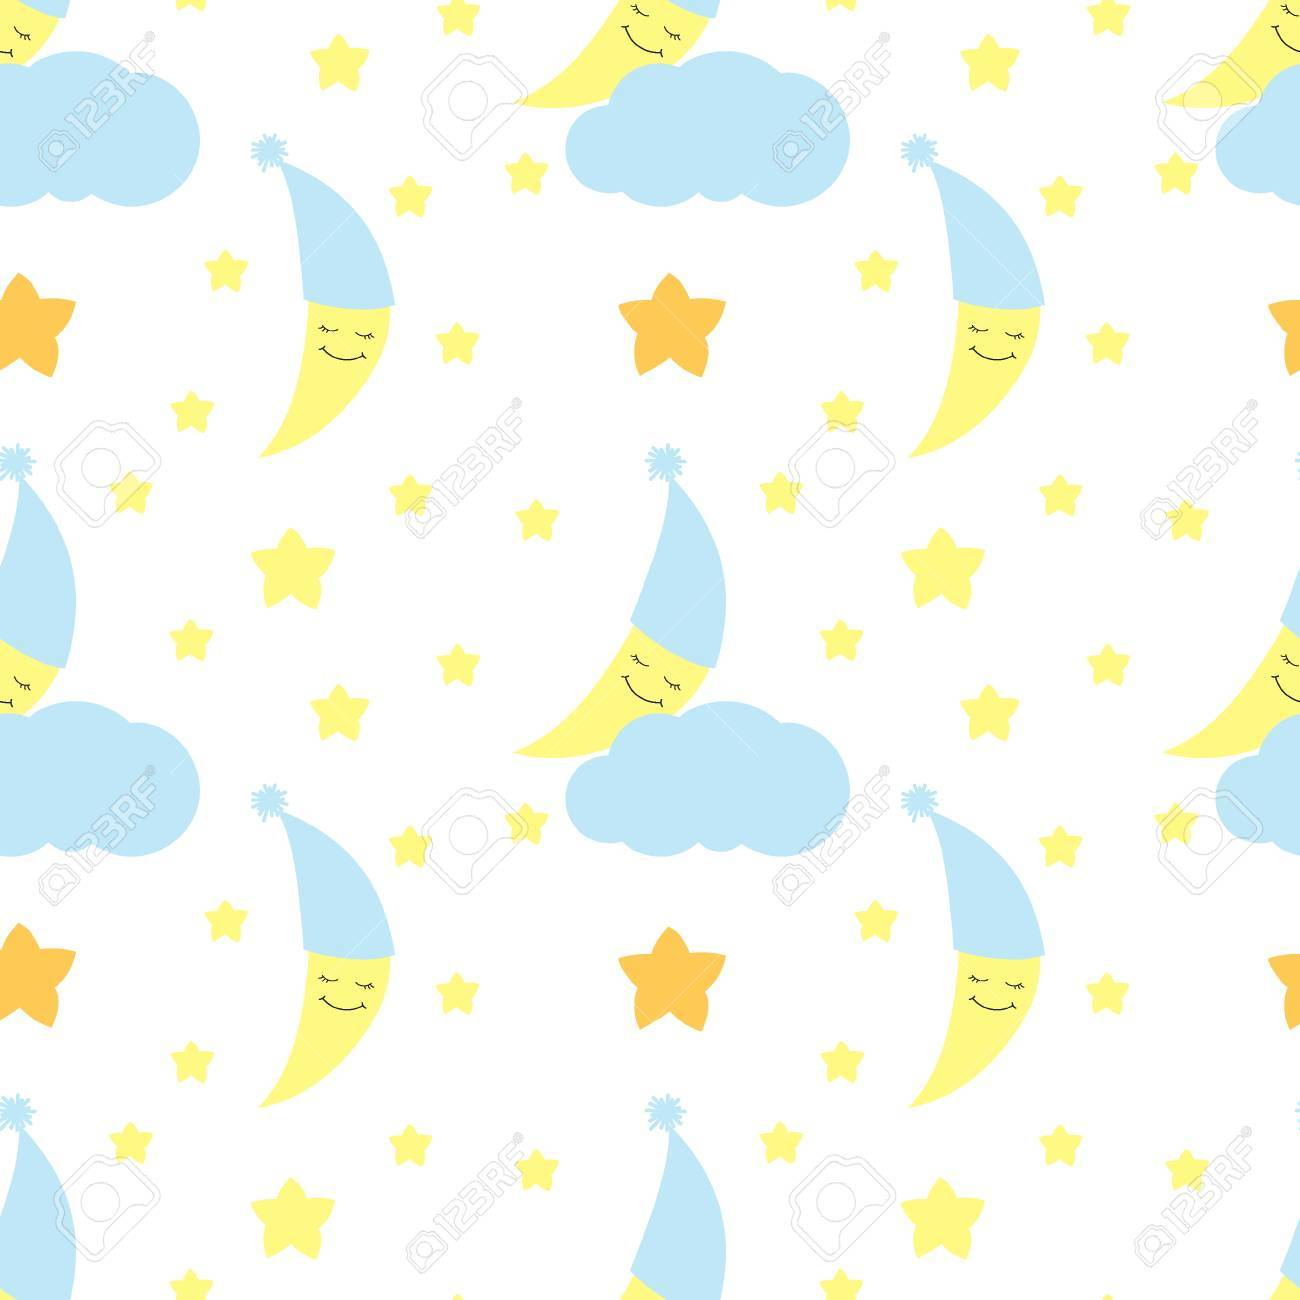 seamless pattern of cute baby half moon background for birthday